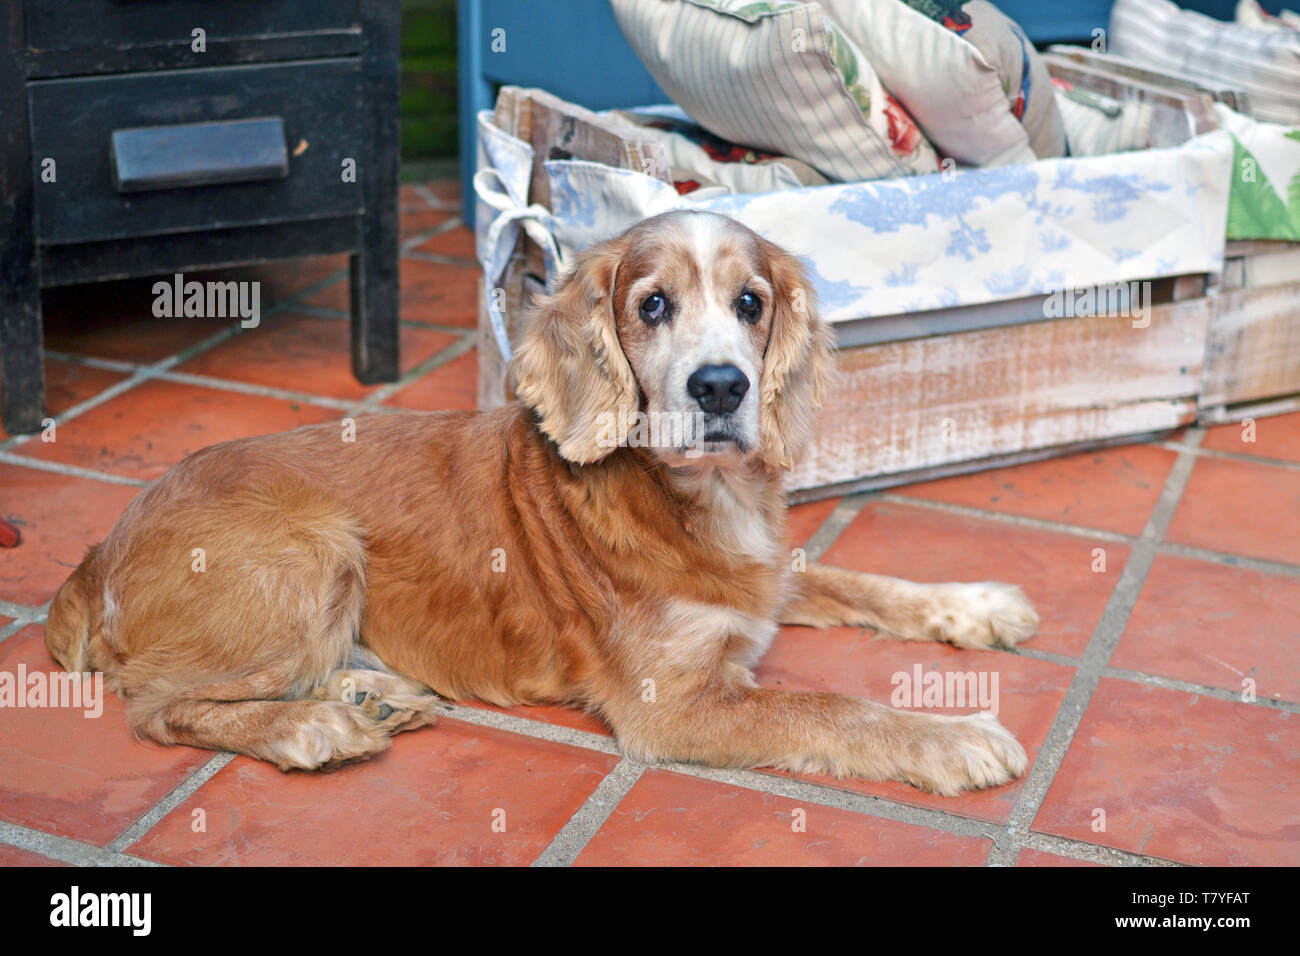 Old cocker spaniel resting - Stock Image